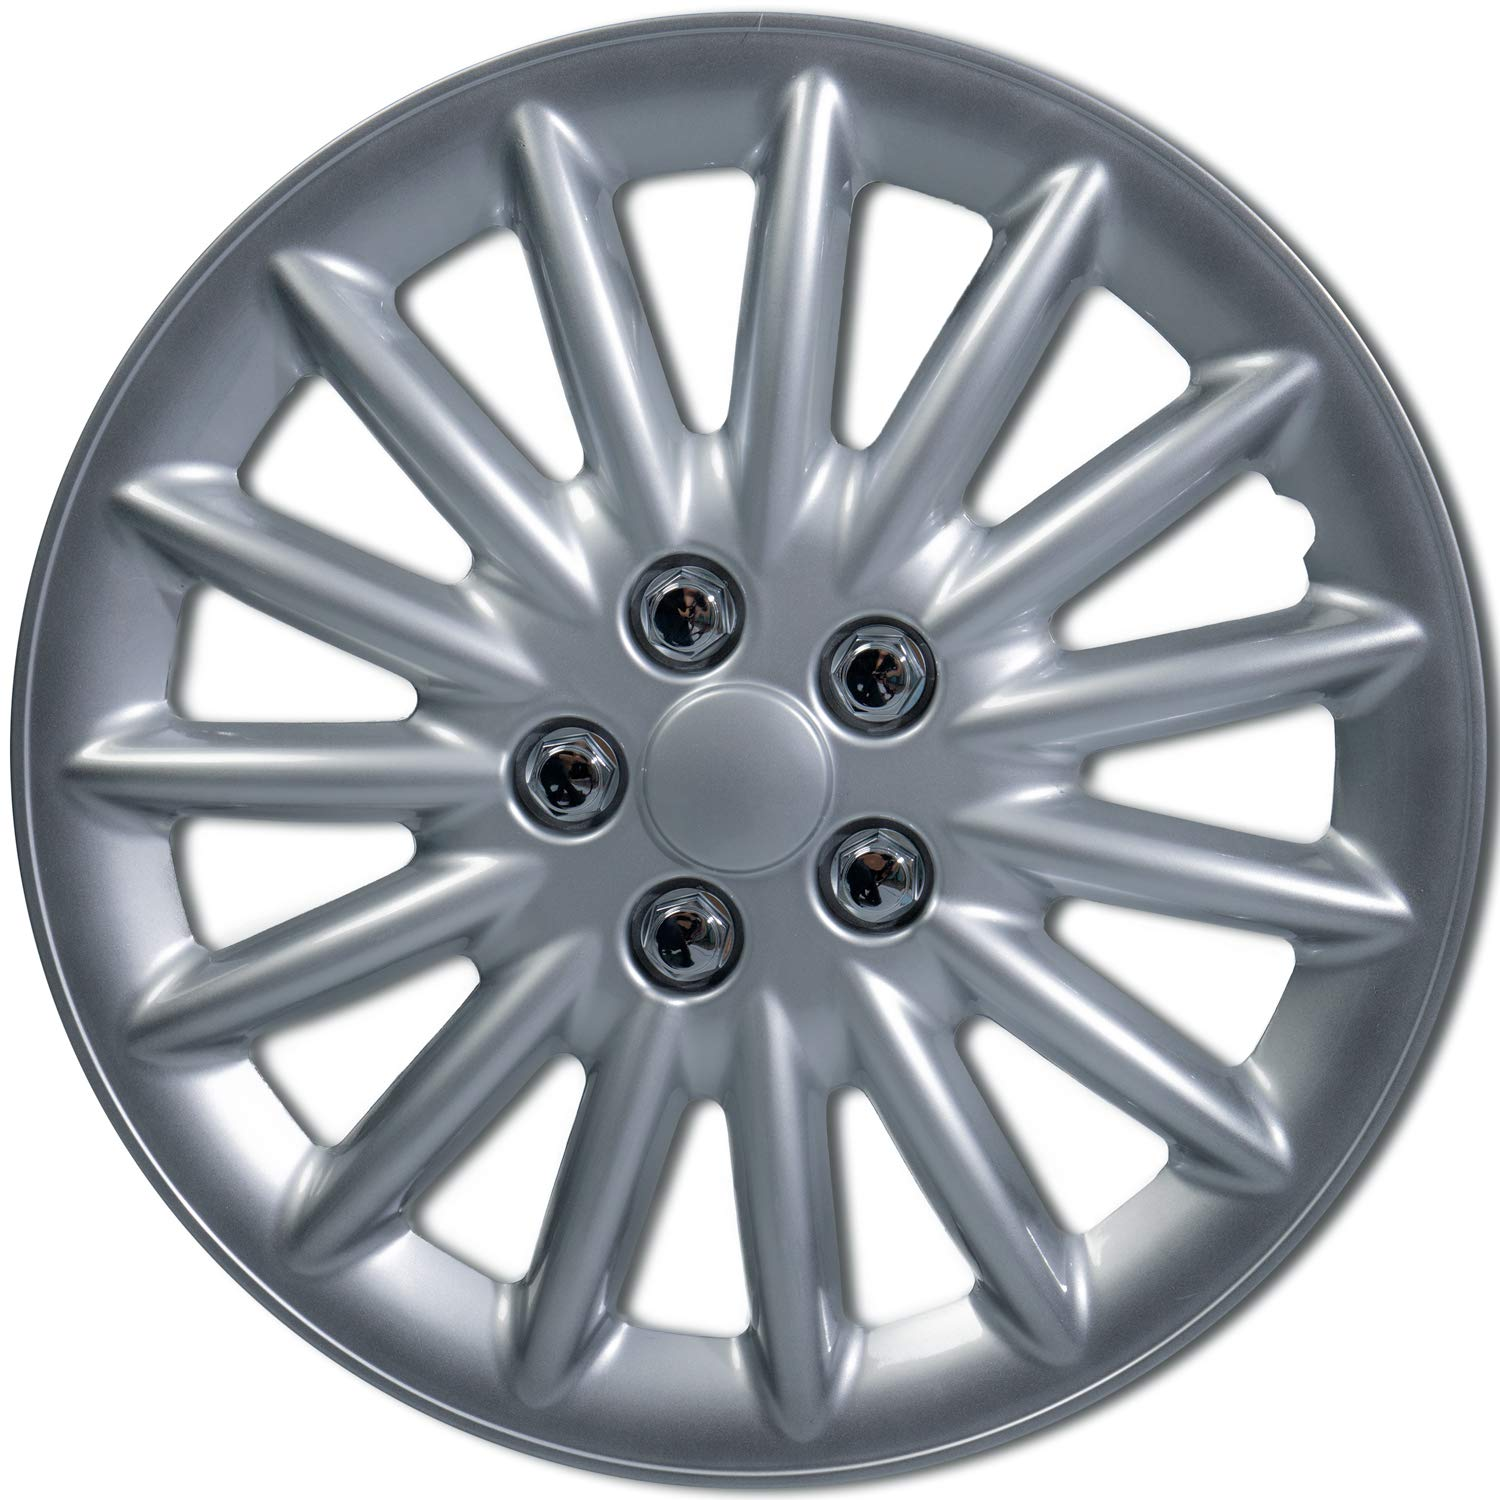 16 inch Hubcaps Best for 2011-2016 Toyota Corolla Set of 4 Wheel Covers 16in Hub Caps SIlver Rim Cover - Car Accessories for 16 inch Wheels - Snap On Hubcap, Auto Tire Replacement Exterior Cap